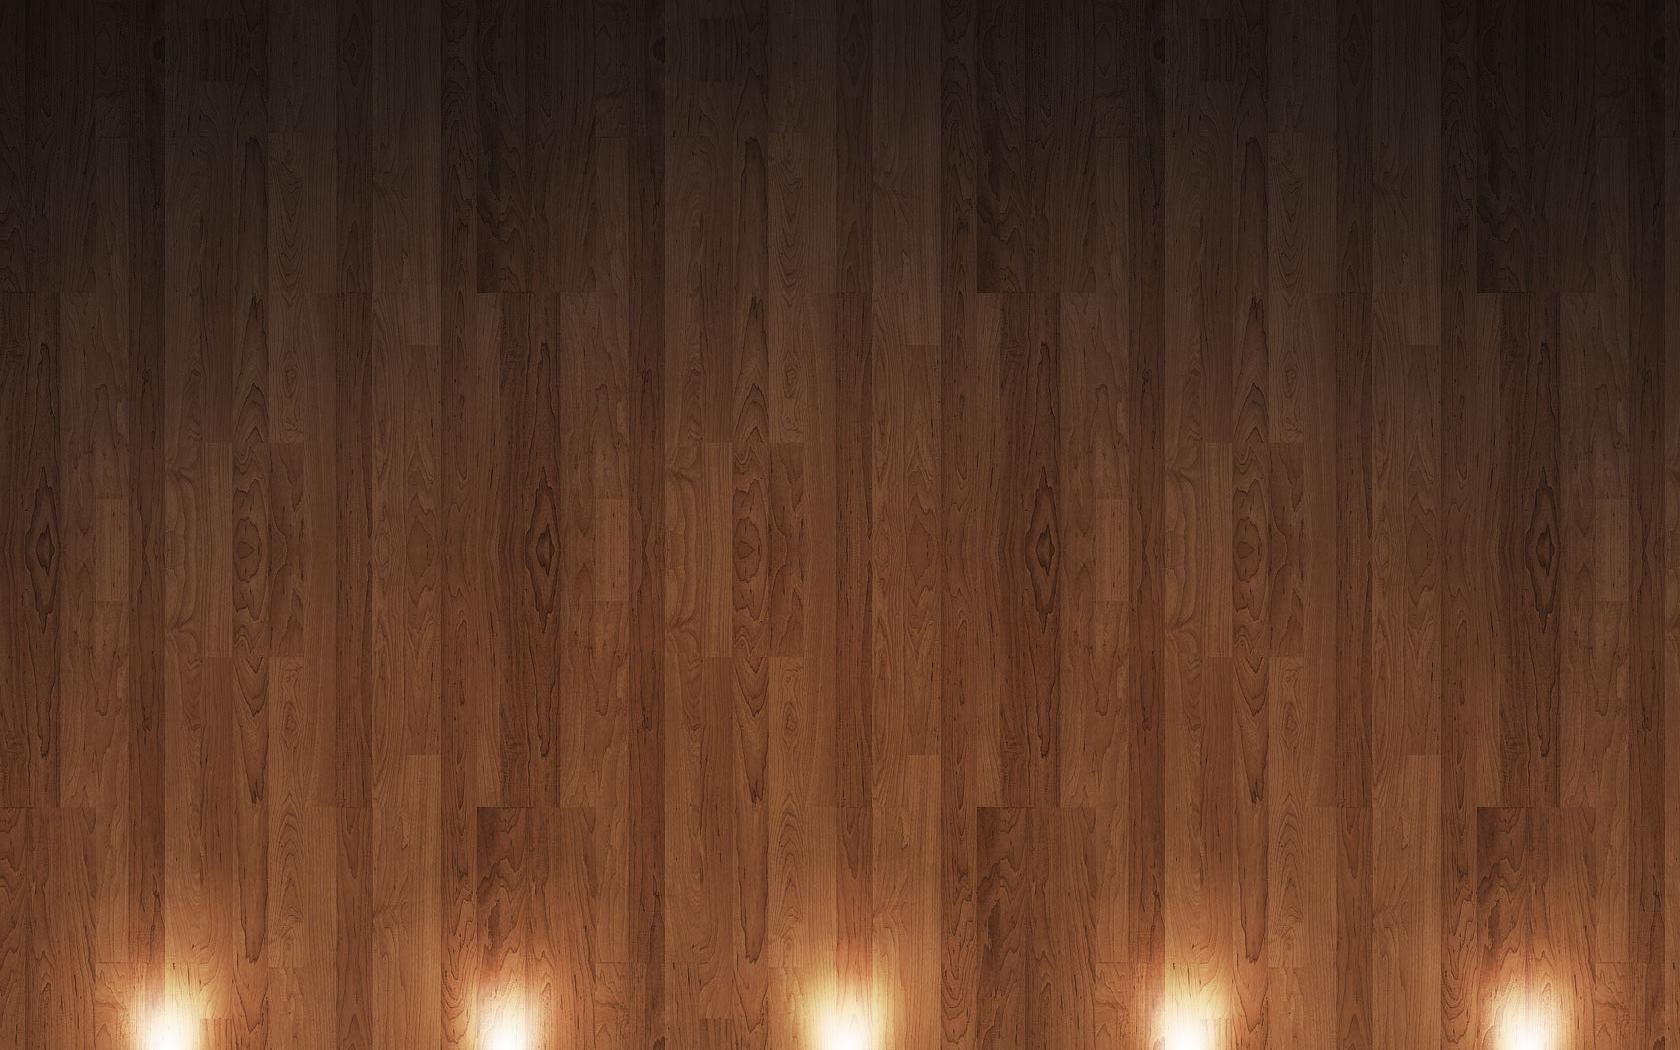 light wood textures 16801050 hd wallpaper Limitless Controls 1680x1050